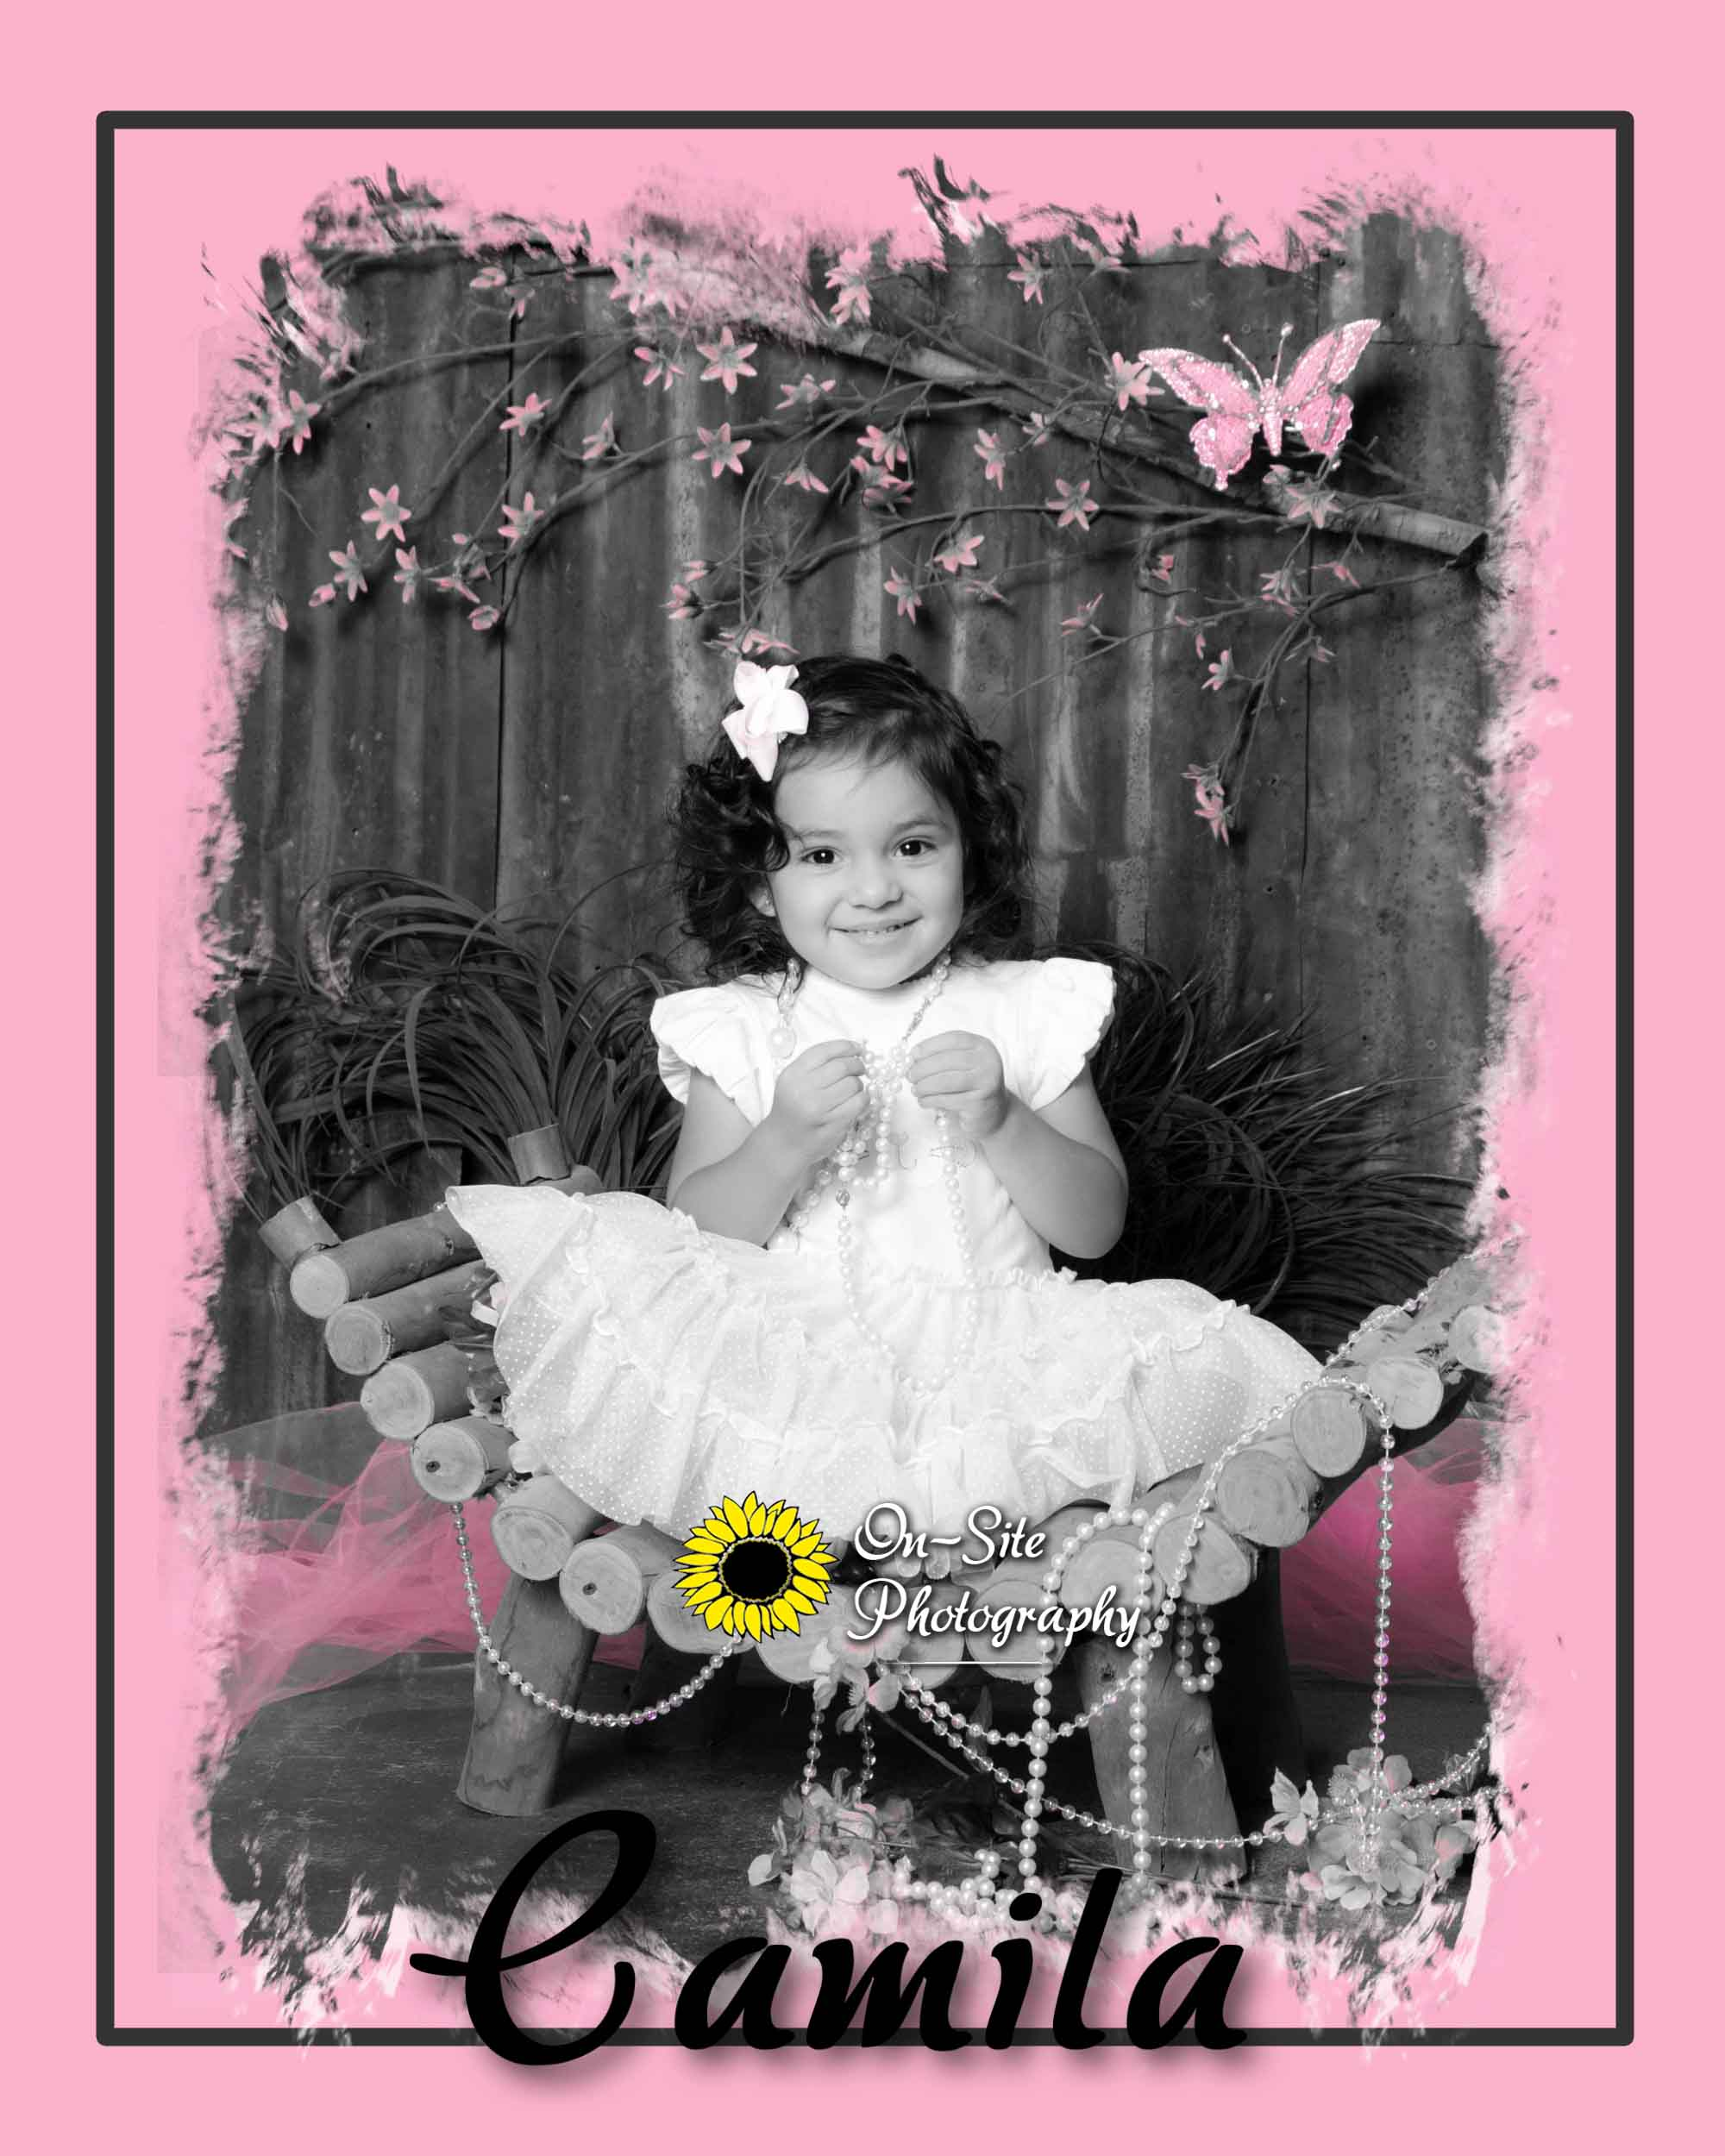 Children portraits, cutest little girl photos, adorable 2 year old girl photos, On-Site Photography,